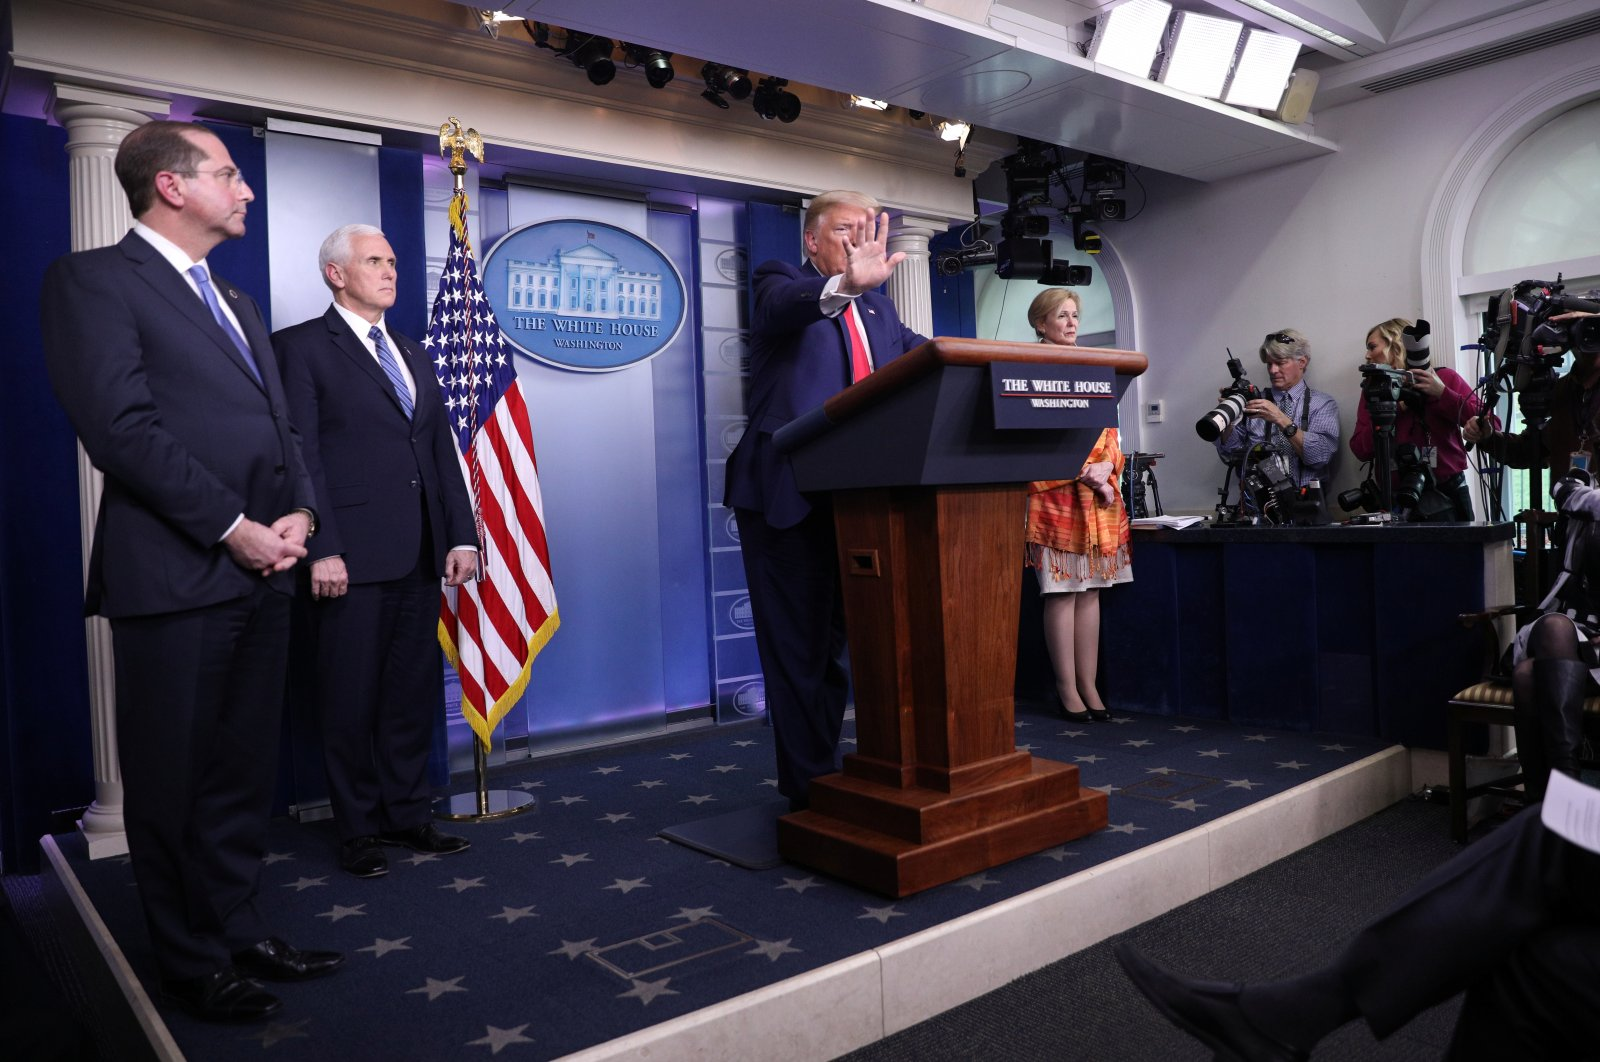 U.S. President Donald Trump puts his hand up to stop a followup question from CNN chief White House correspondent Jim Acosta as he leads the daily coronavirus task force briefing with Secretary of Health and Human Services Alex Acosta, Vice President Mike Pence and White House Coronavirus Response Coordinator Dr. Deborah Birx in the Brady press briefing room at the White House in Washington, U.S., April 3, 2020. (Reuters Photo)